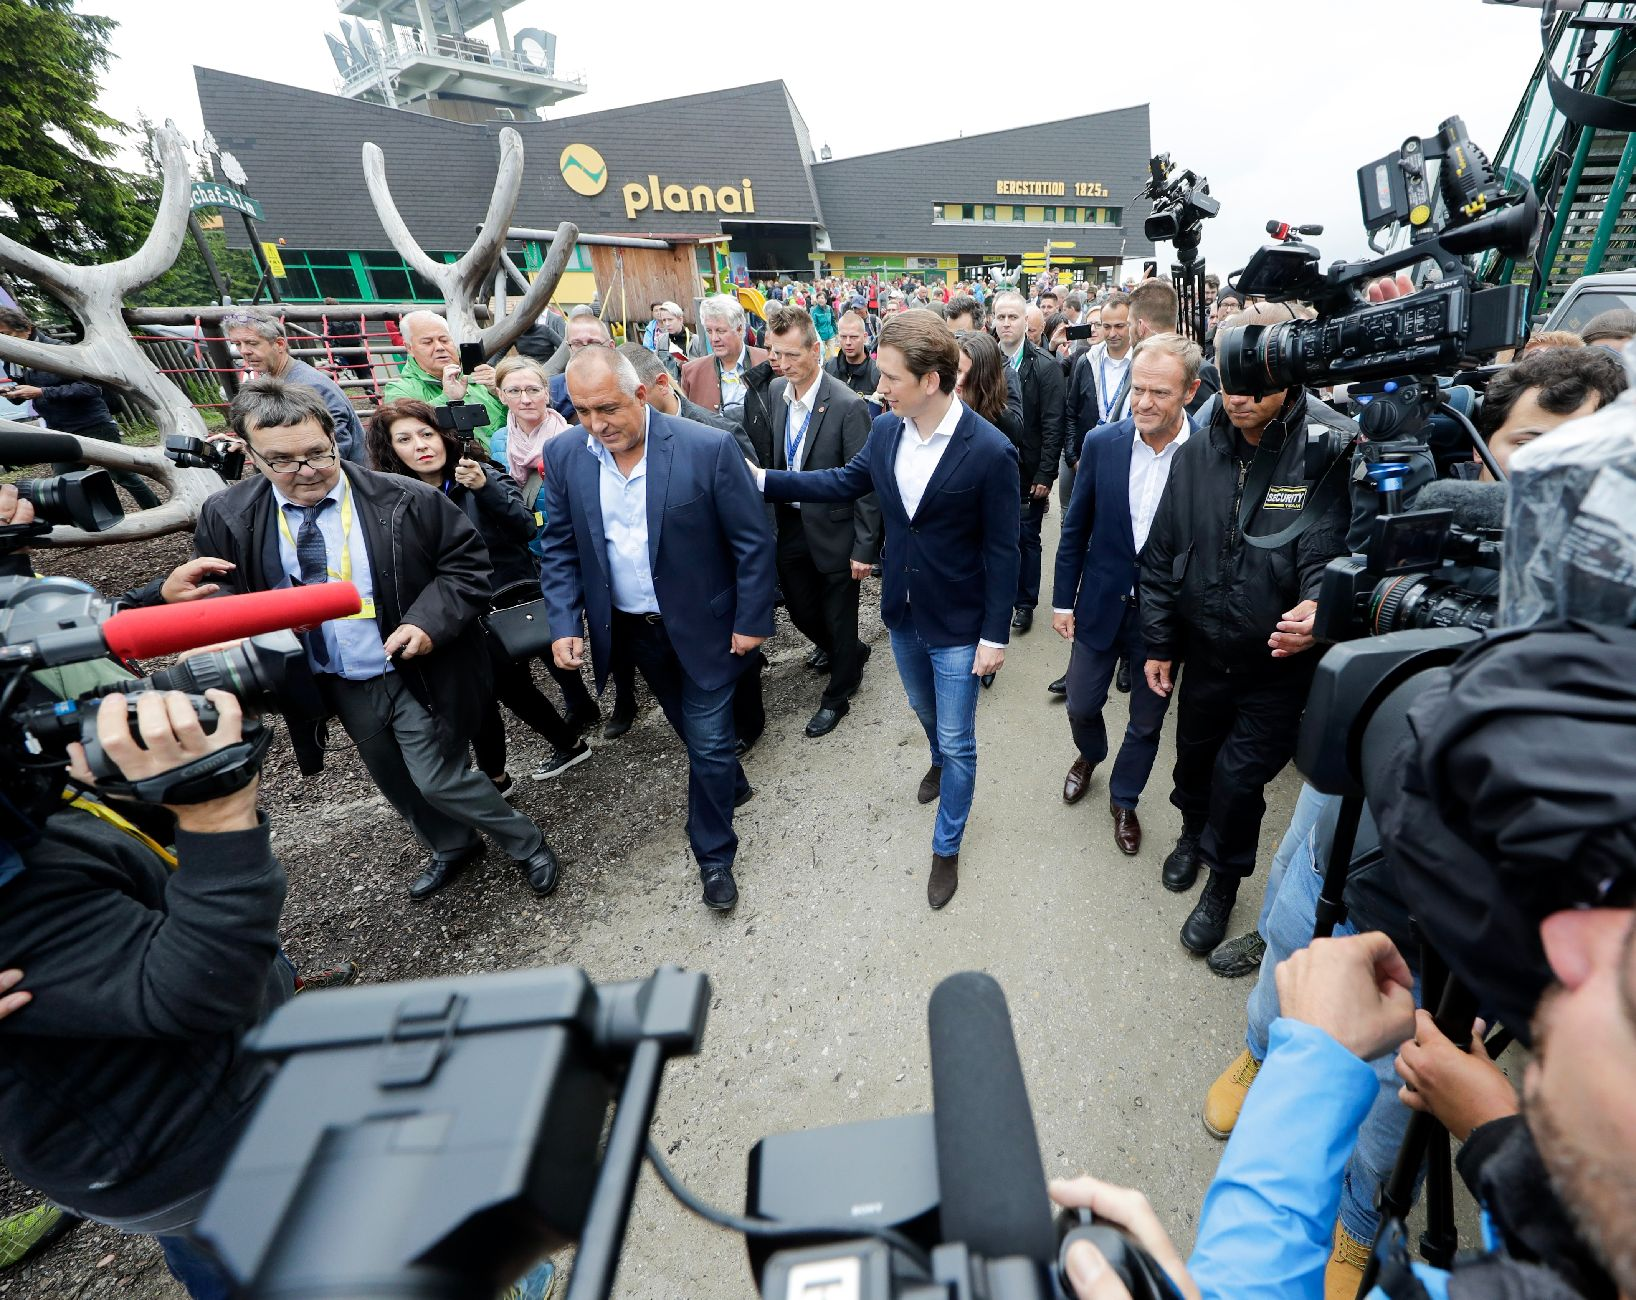 Arrival of Federal Chancellor Sebastian Kurz, Prime Minister Boyko Borissov and European Council President Donald Tusk at the top of the Planai mountain